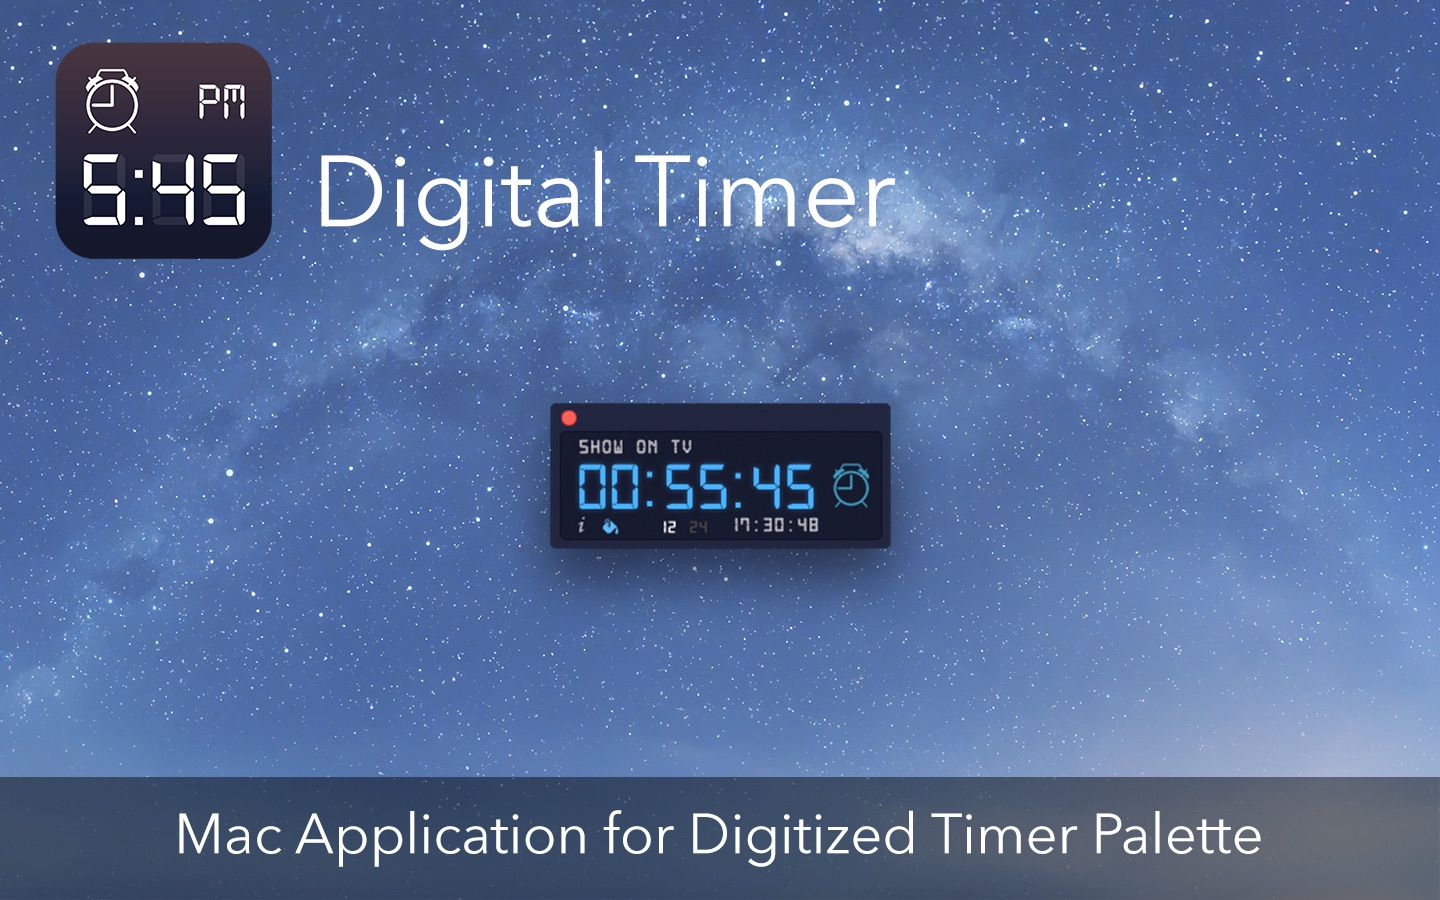 Digital Timer on the Mac App Store